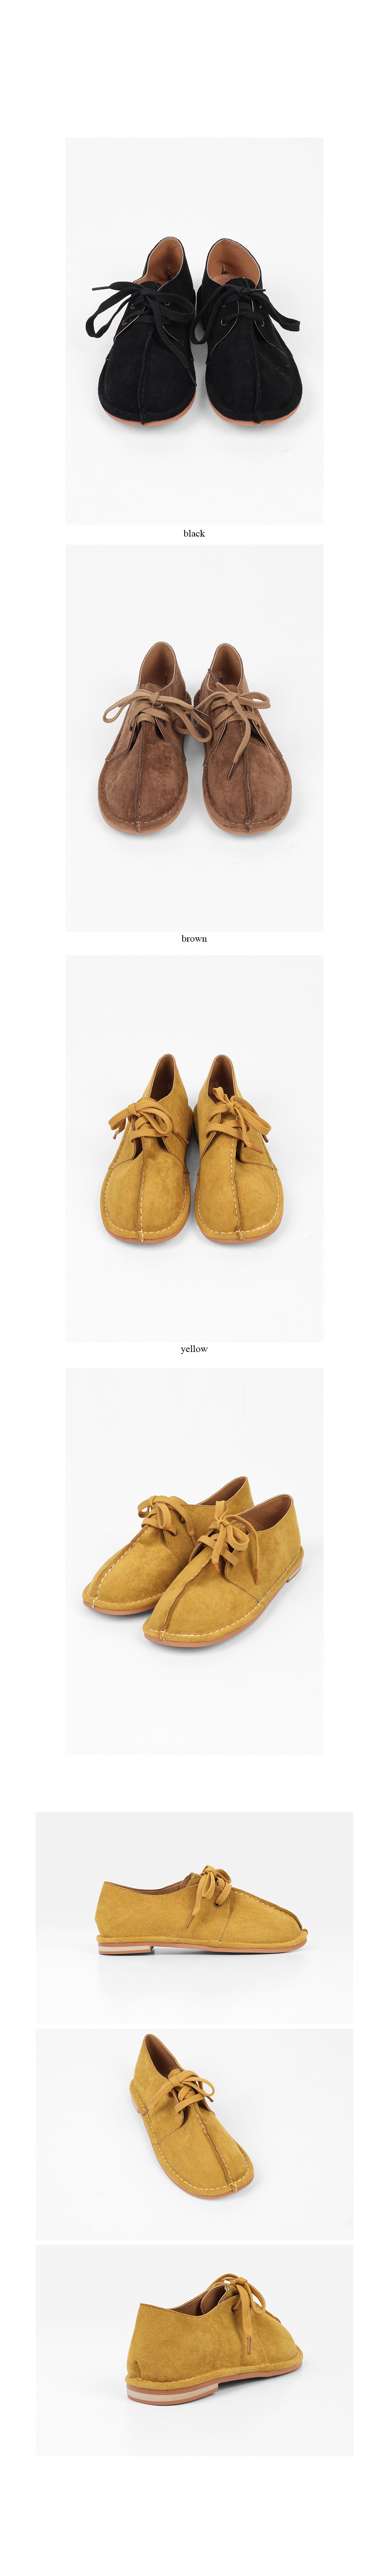 suede cutting detail shoes